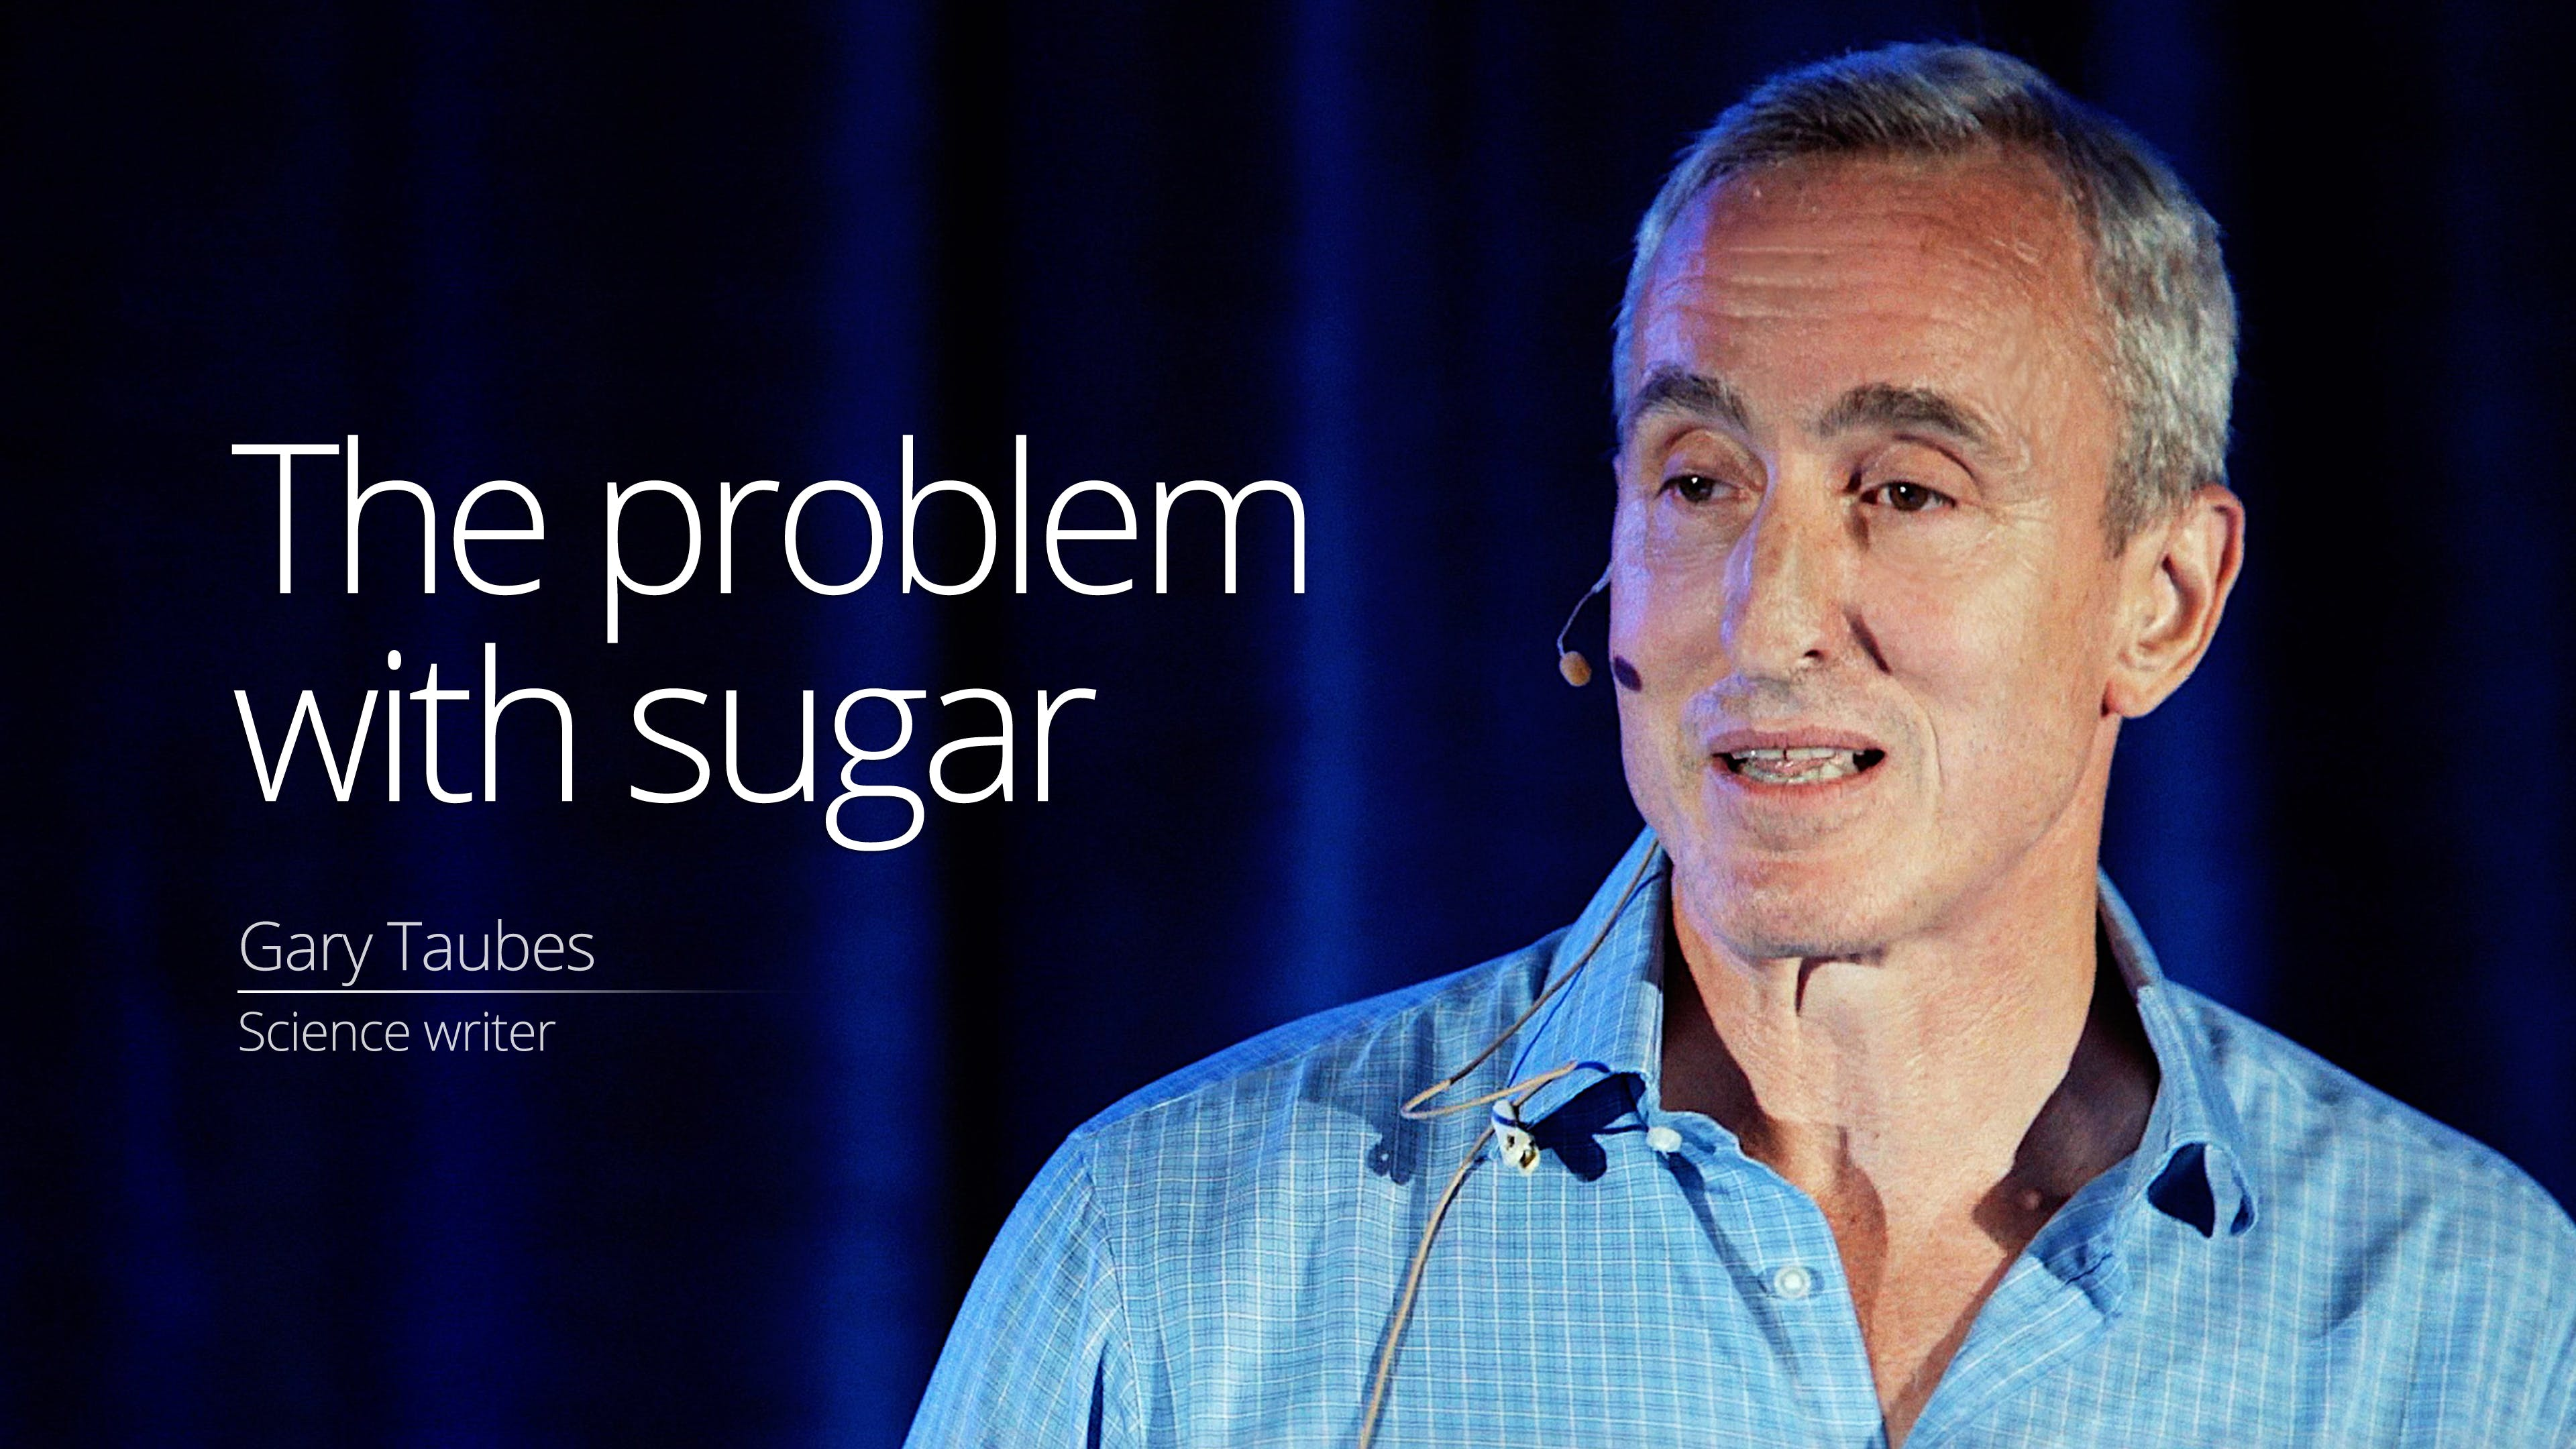 The problem with sugar